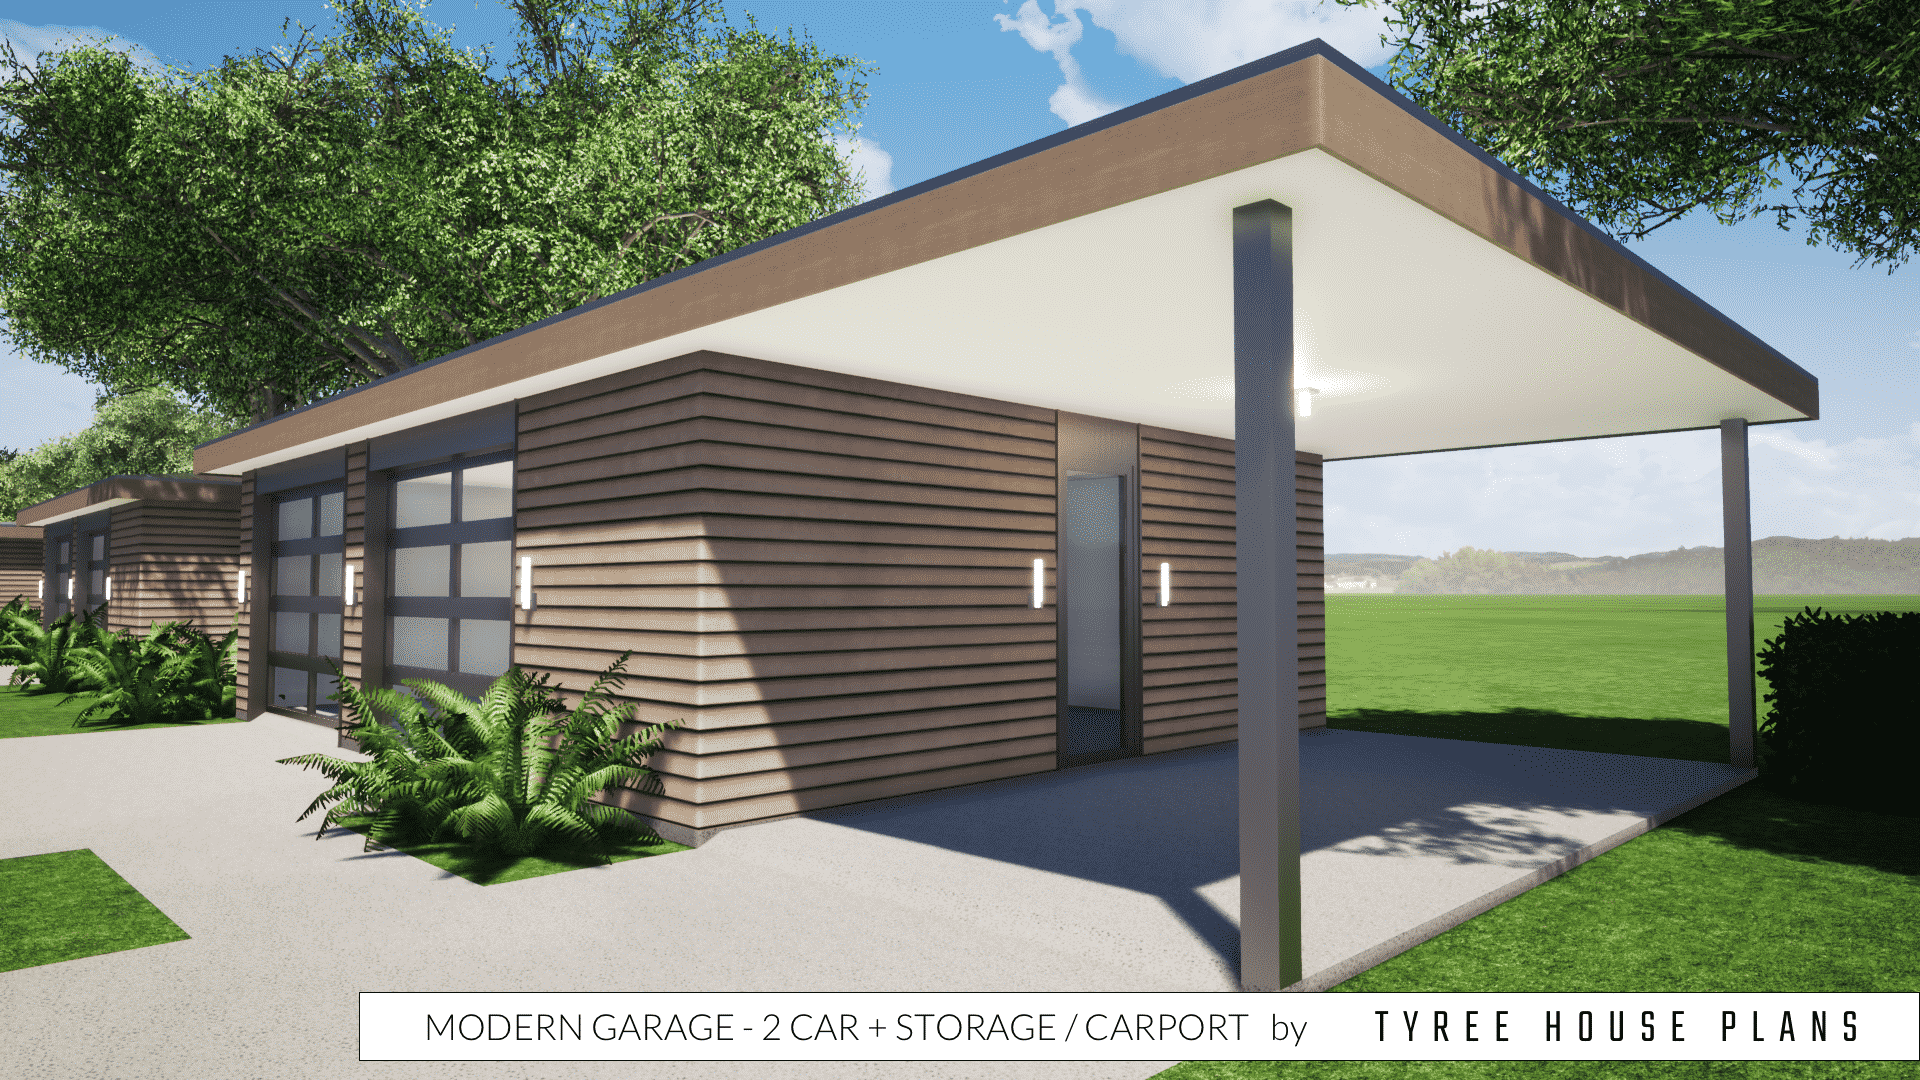 Modern Garage Plan - 2 Car plus Storage and Carport by Tyree House Plans